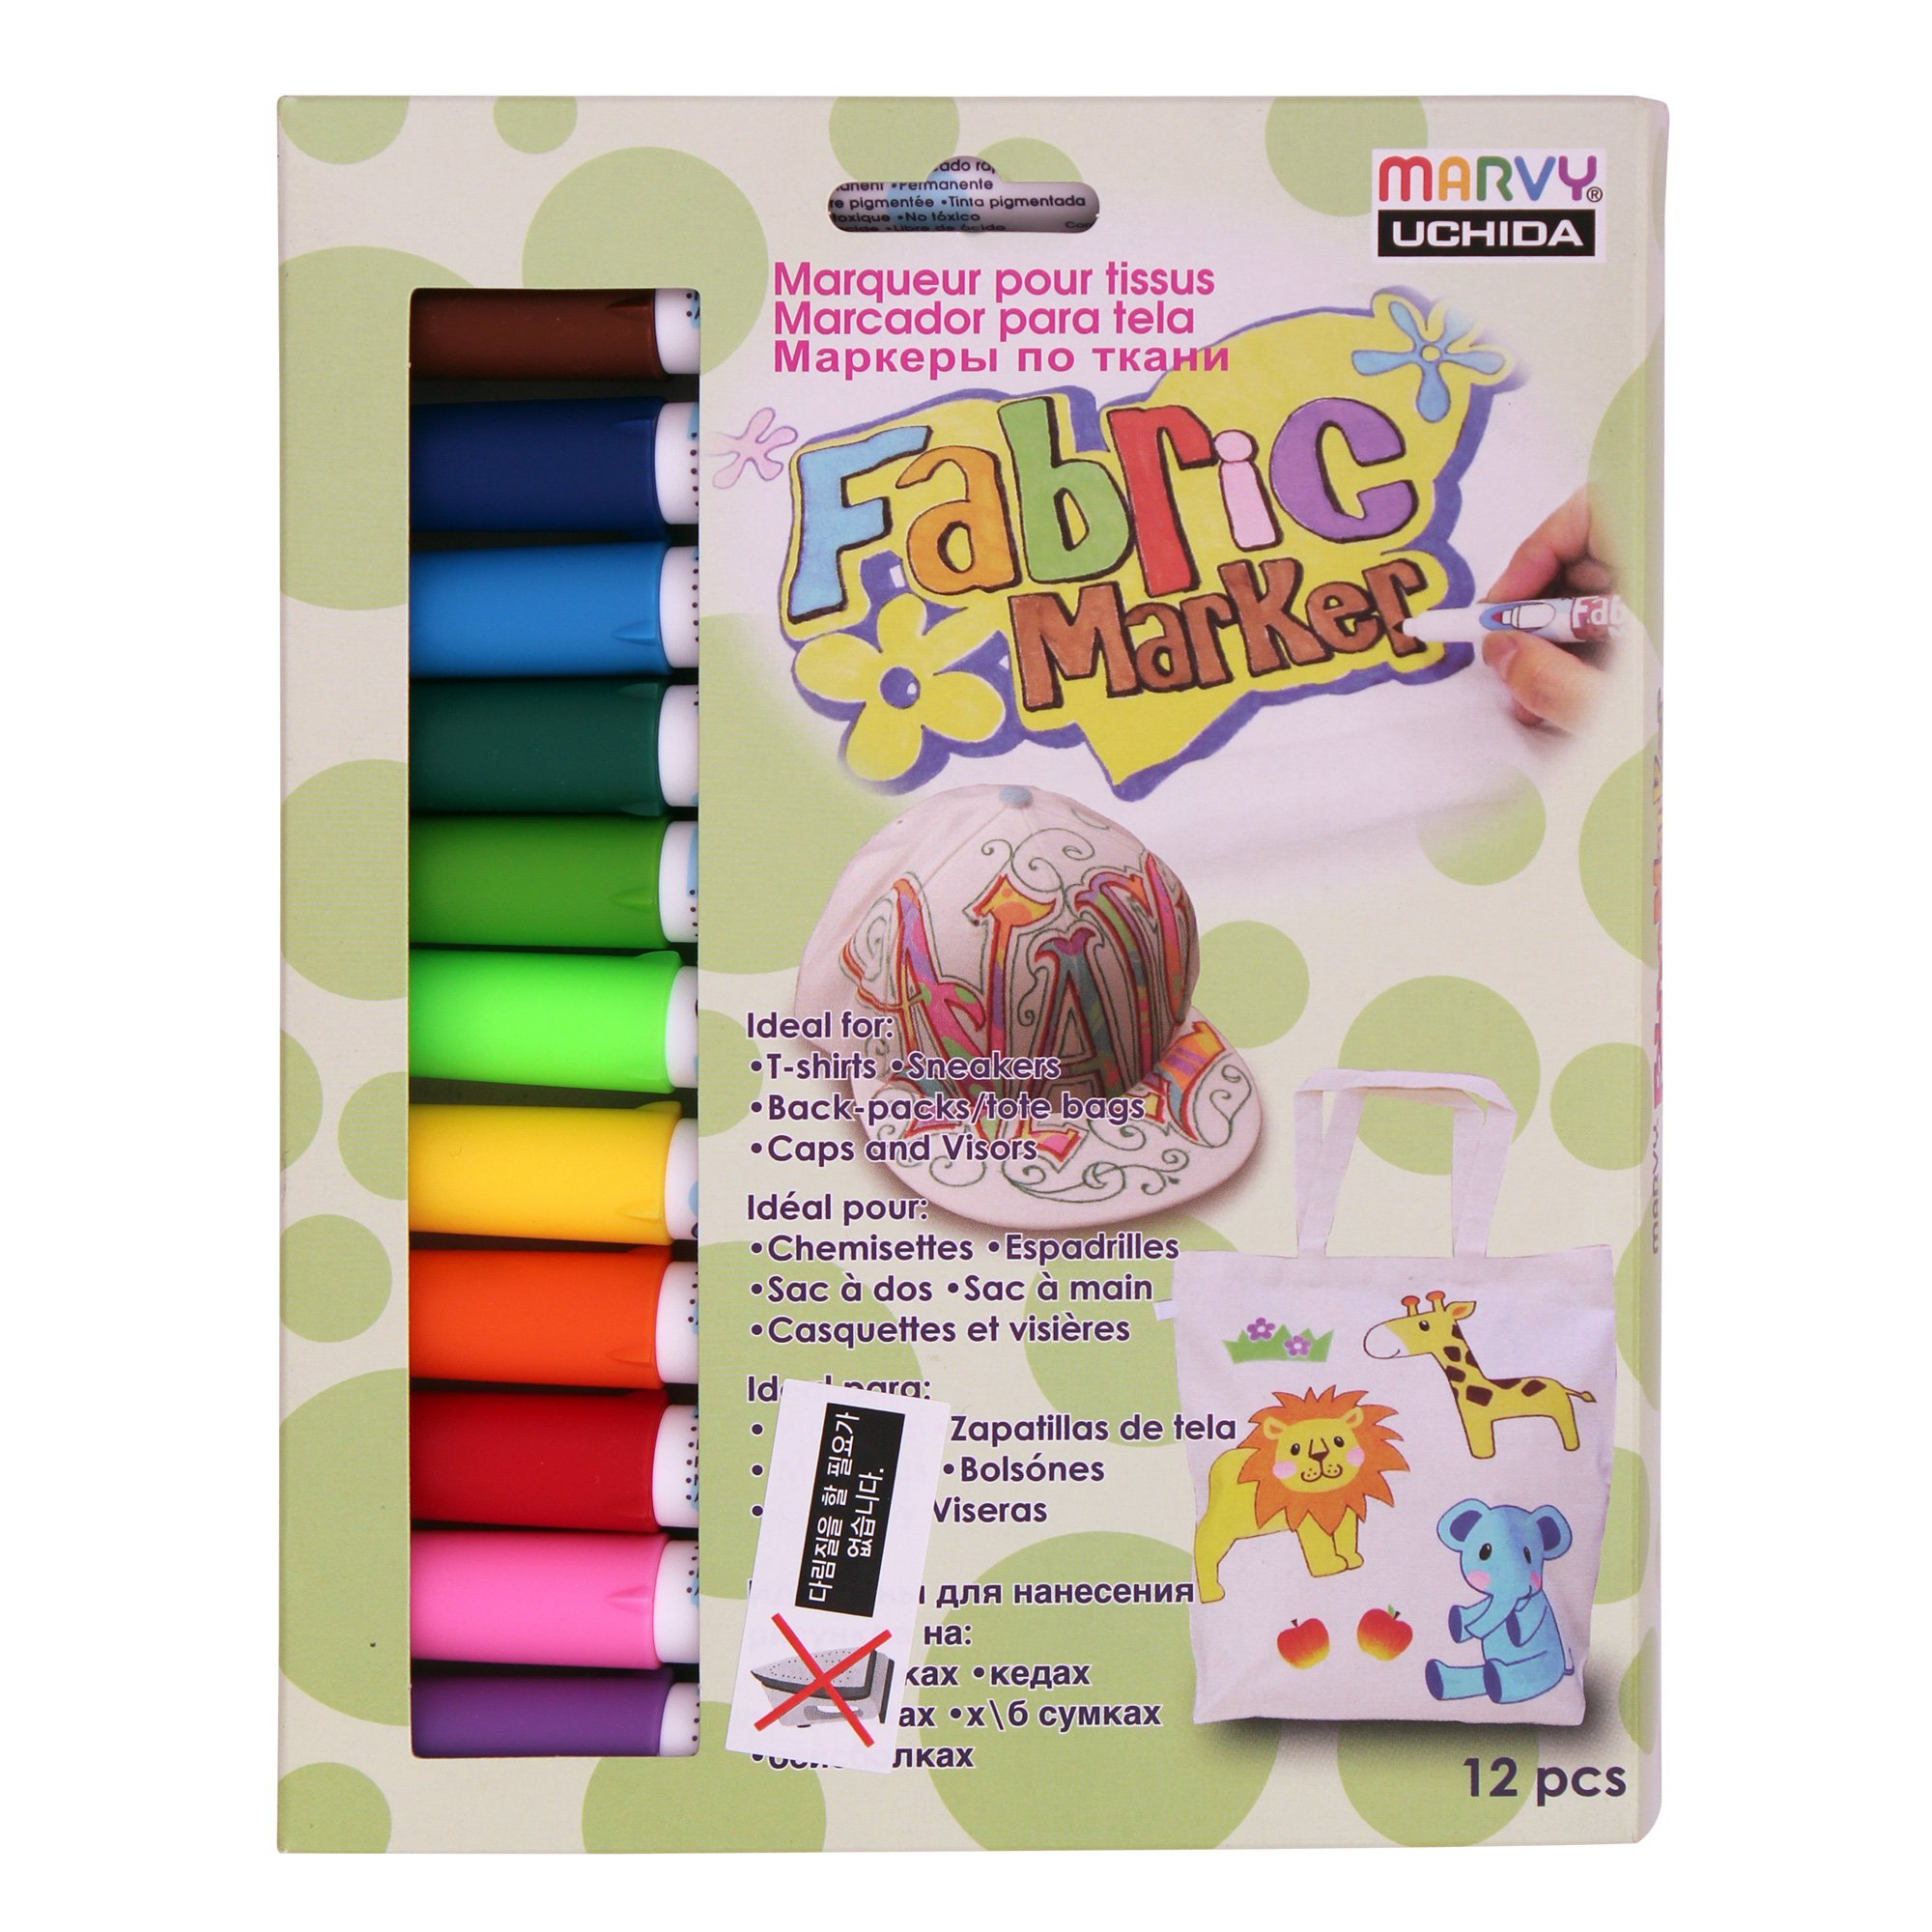 Uchida Marvy Permanent Fabric Marker Clothing, Decor 6/10/12 Colors (Primary - 12 Colors) by Uchida Marvy